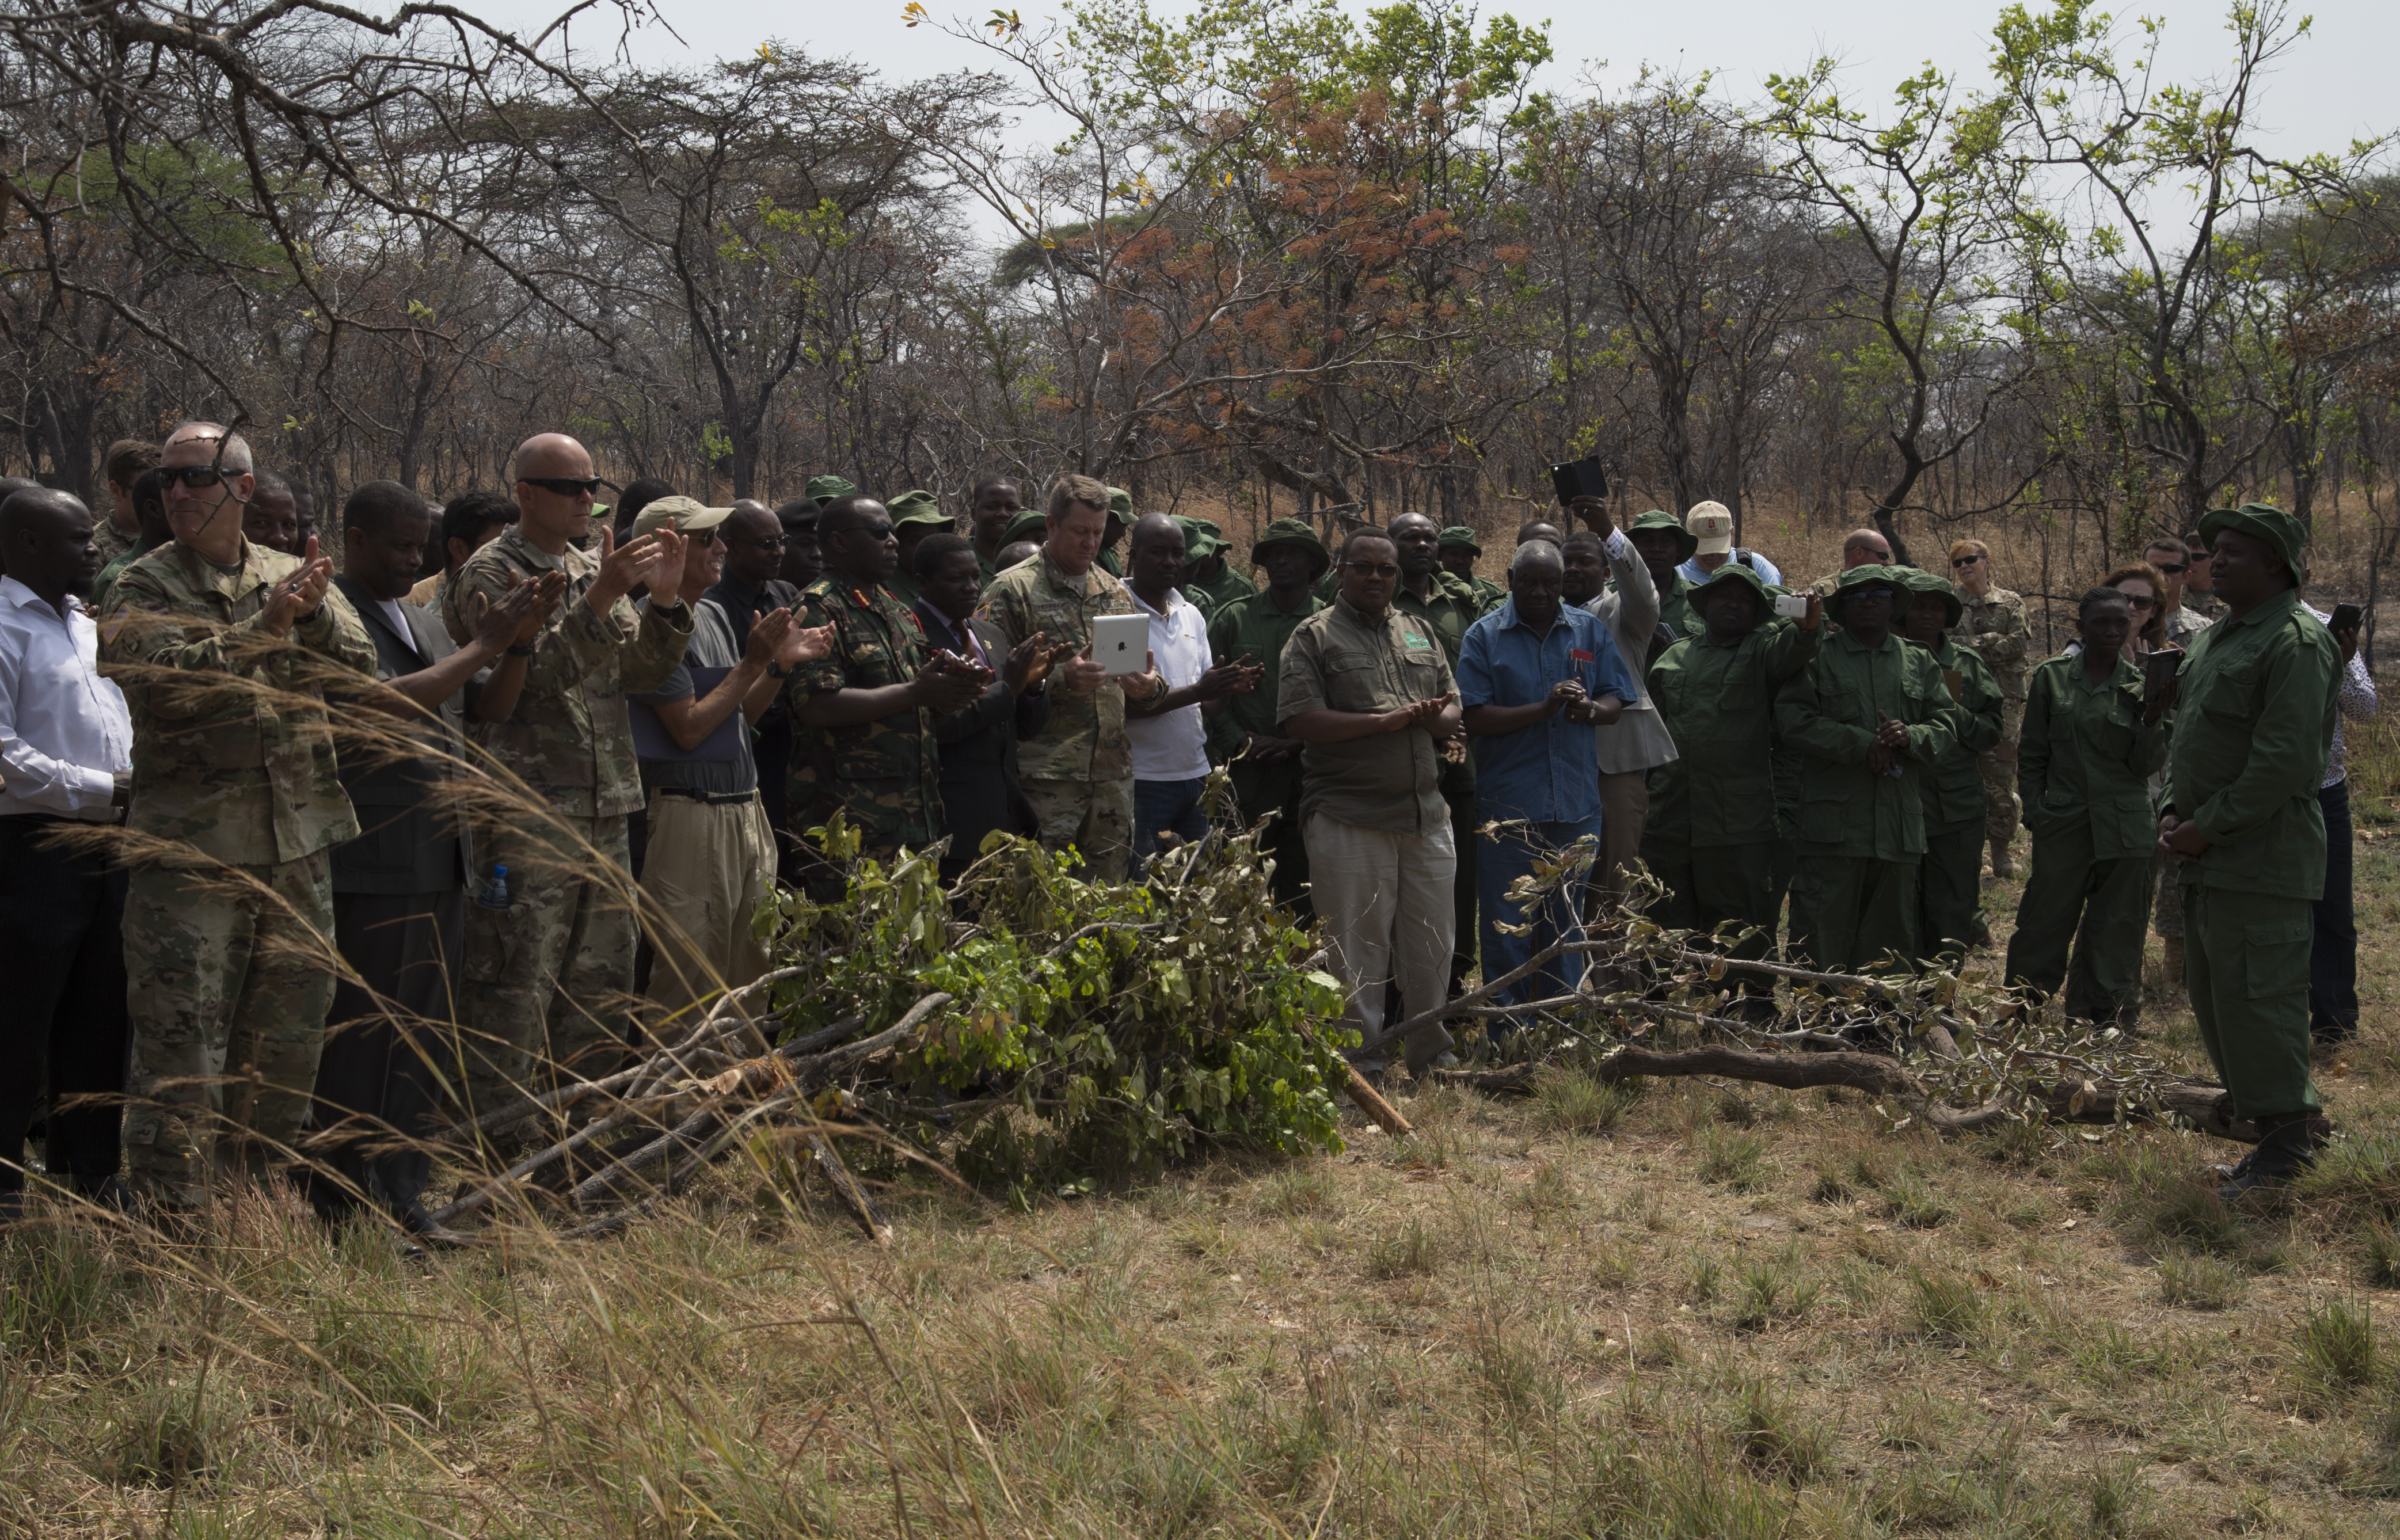 Audience members from the Ministry of Natural Resources and Tourism, Combined Joint Task Force - Horn of Africa, U.S. Embassy Tanzania and North Carolina Army National Guard clap for Tanzania park and game reserve rangers following a demonstration August 24, 2016, at Rungwa Game Reserve, Tanzania. Rangers recently trained with members of the 403rd Civil Affairs Battalion, a component of Combined Joint Task Force - Horn of Africa, and North Carolina Army National Guard to learn techniques to track and capture poachers. (U.S. Air Force photos by Staff Sgt. Eric Summers Jr.)